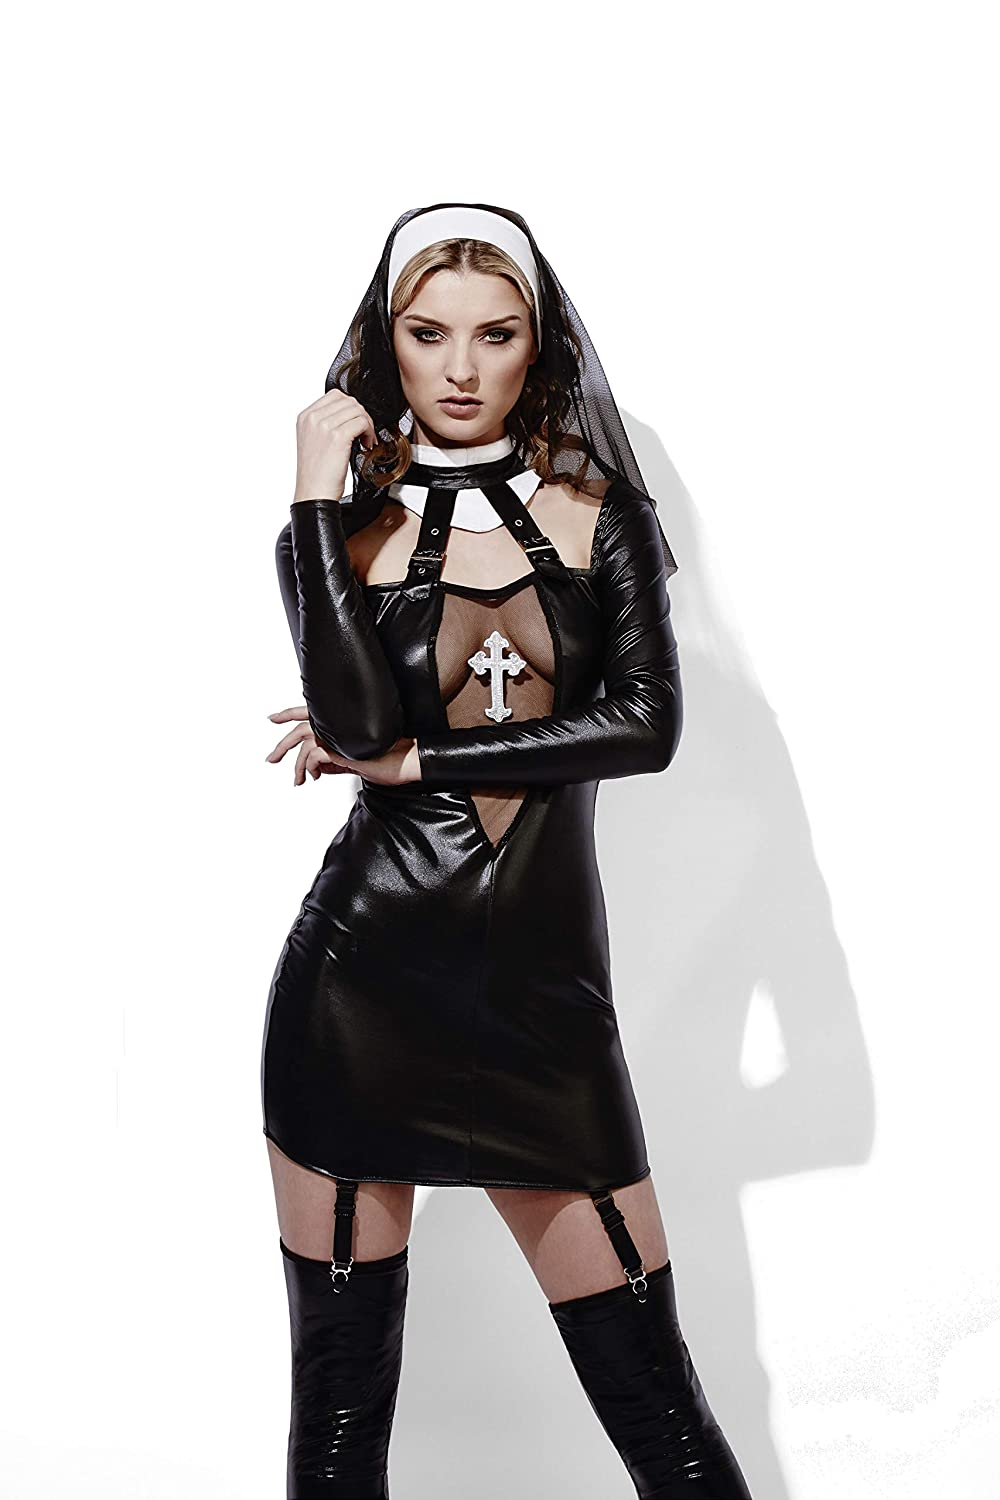 59711db6ace Amazon.com  Fever Women s Miss Behave Nun Costume  Clothing